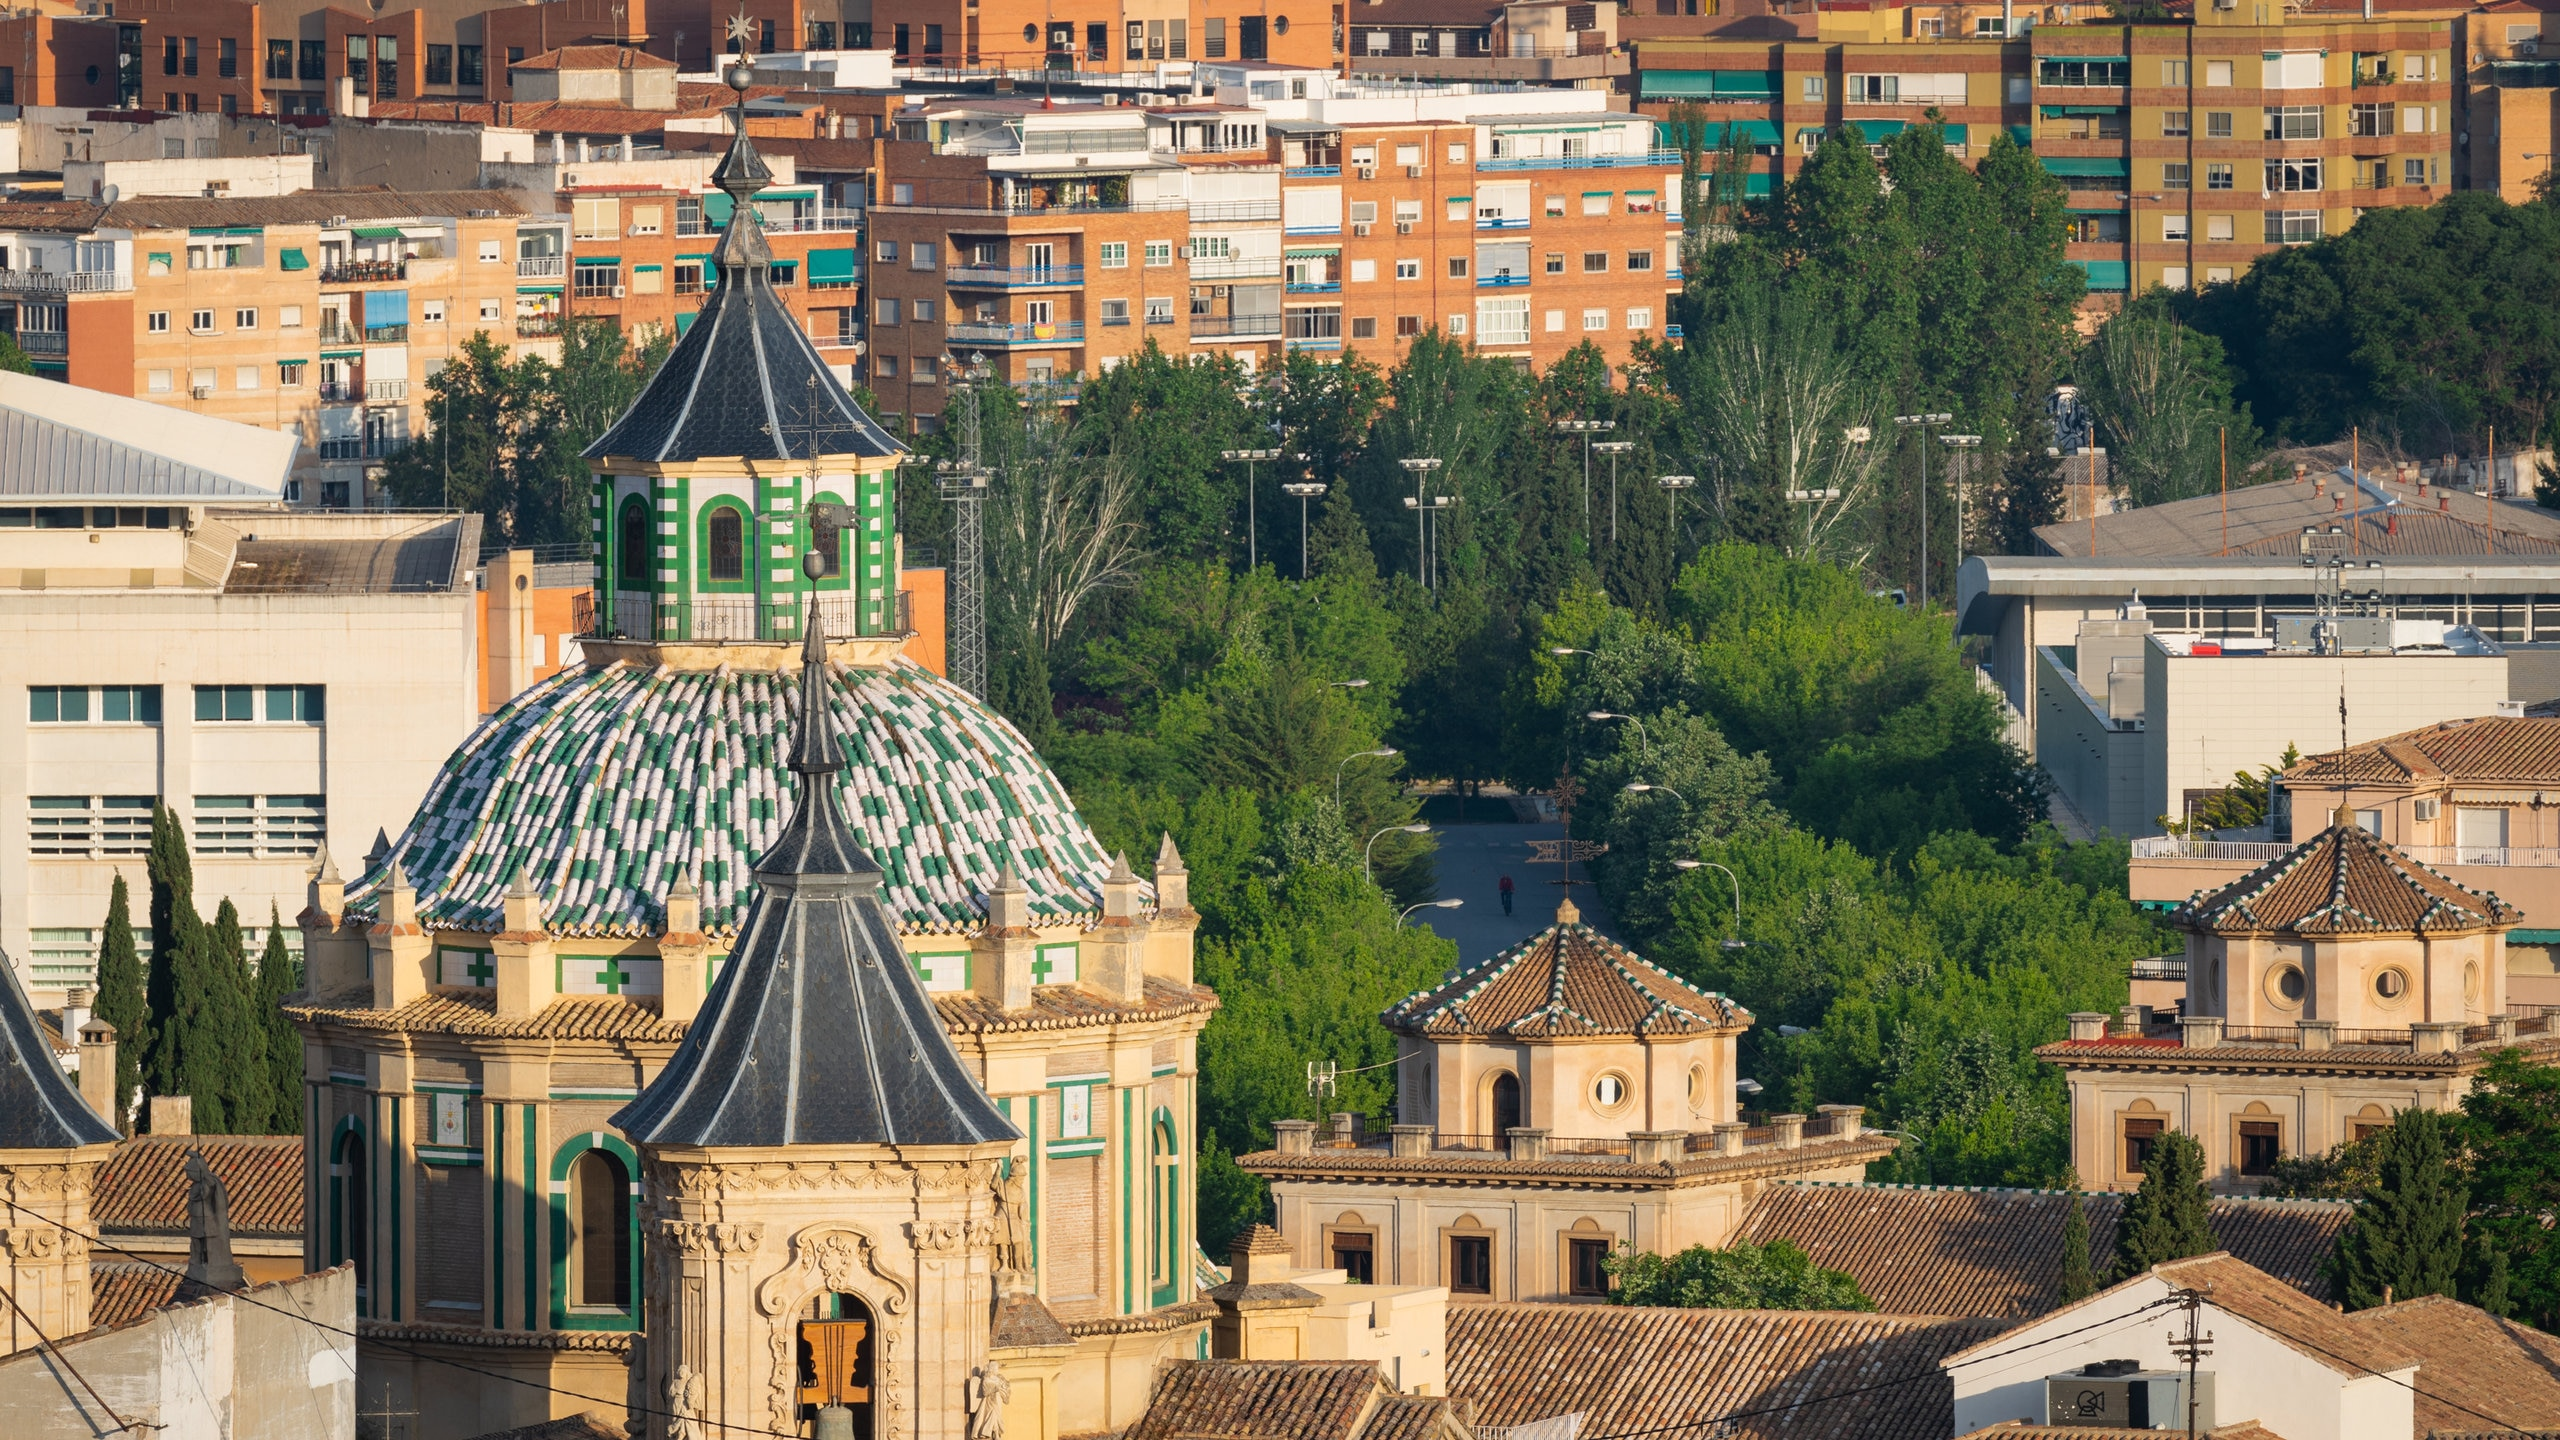 Granada featuring landscape views, heritage elements and a city